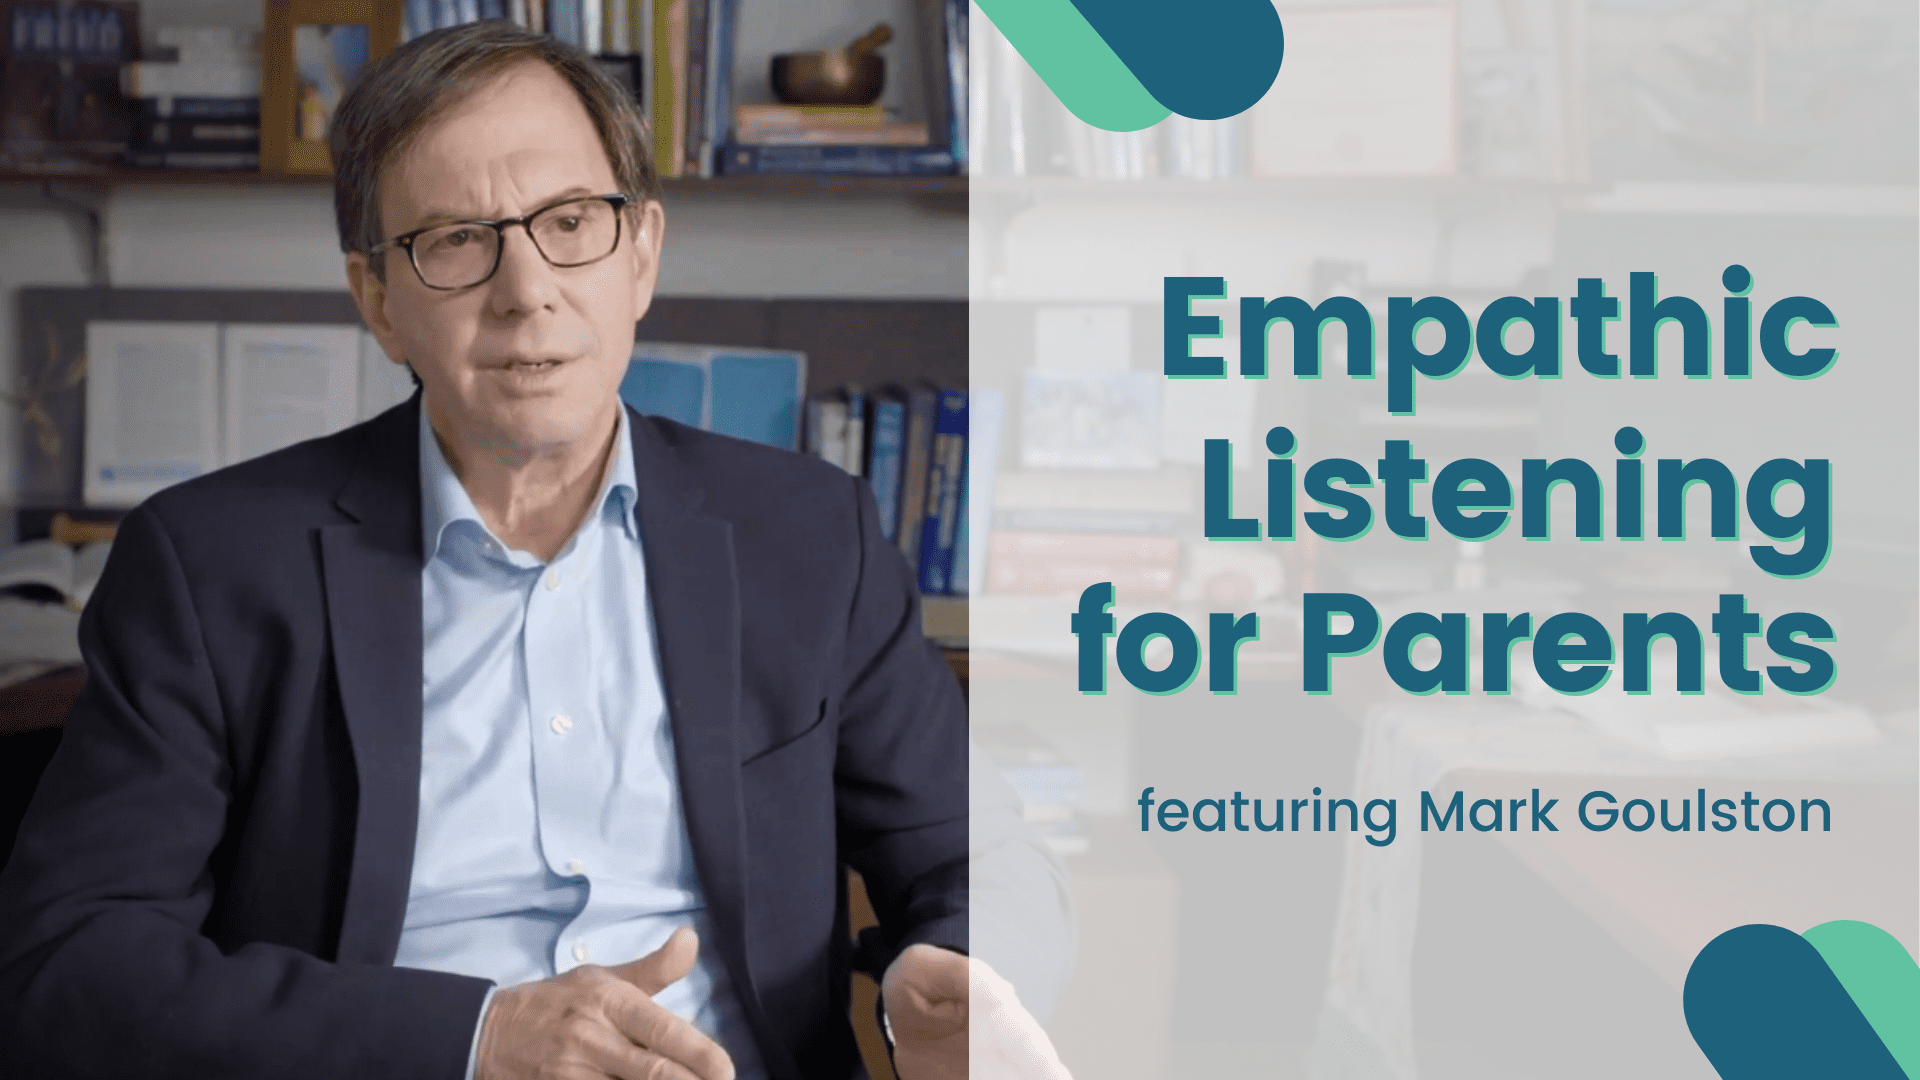 Empathic Listening for Parents